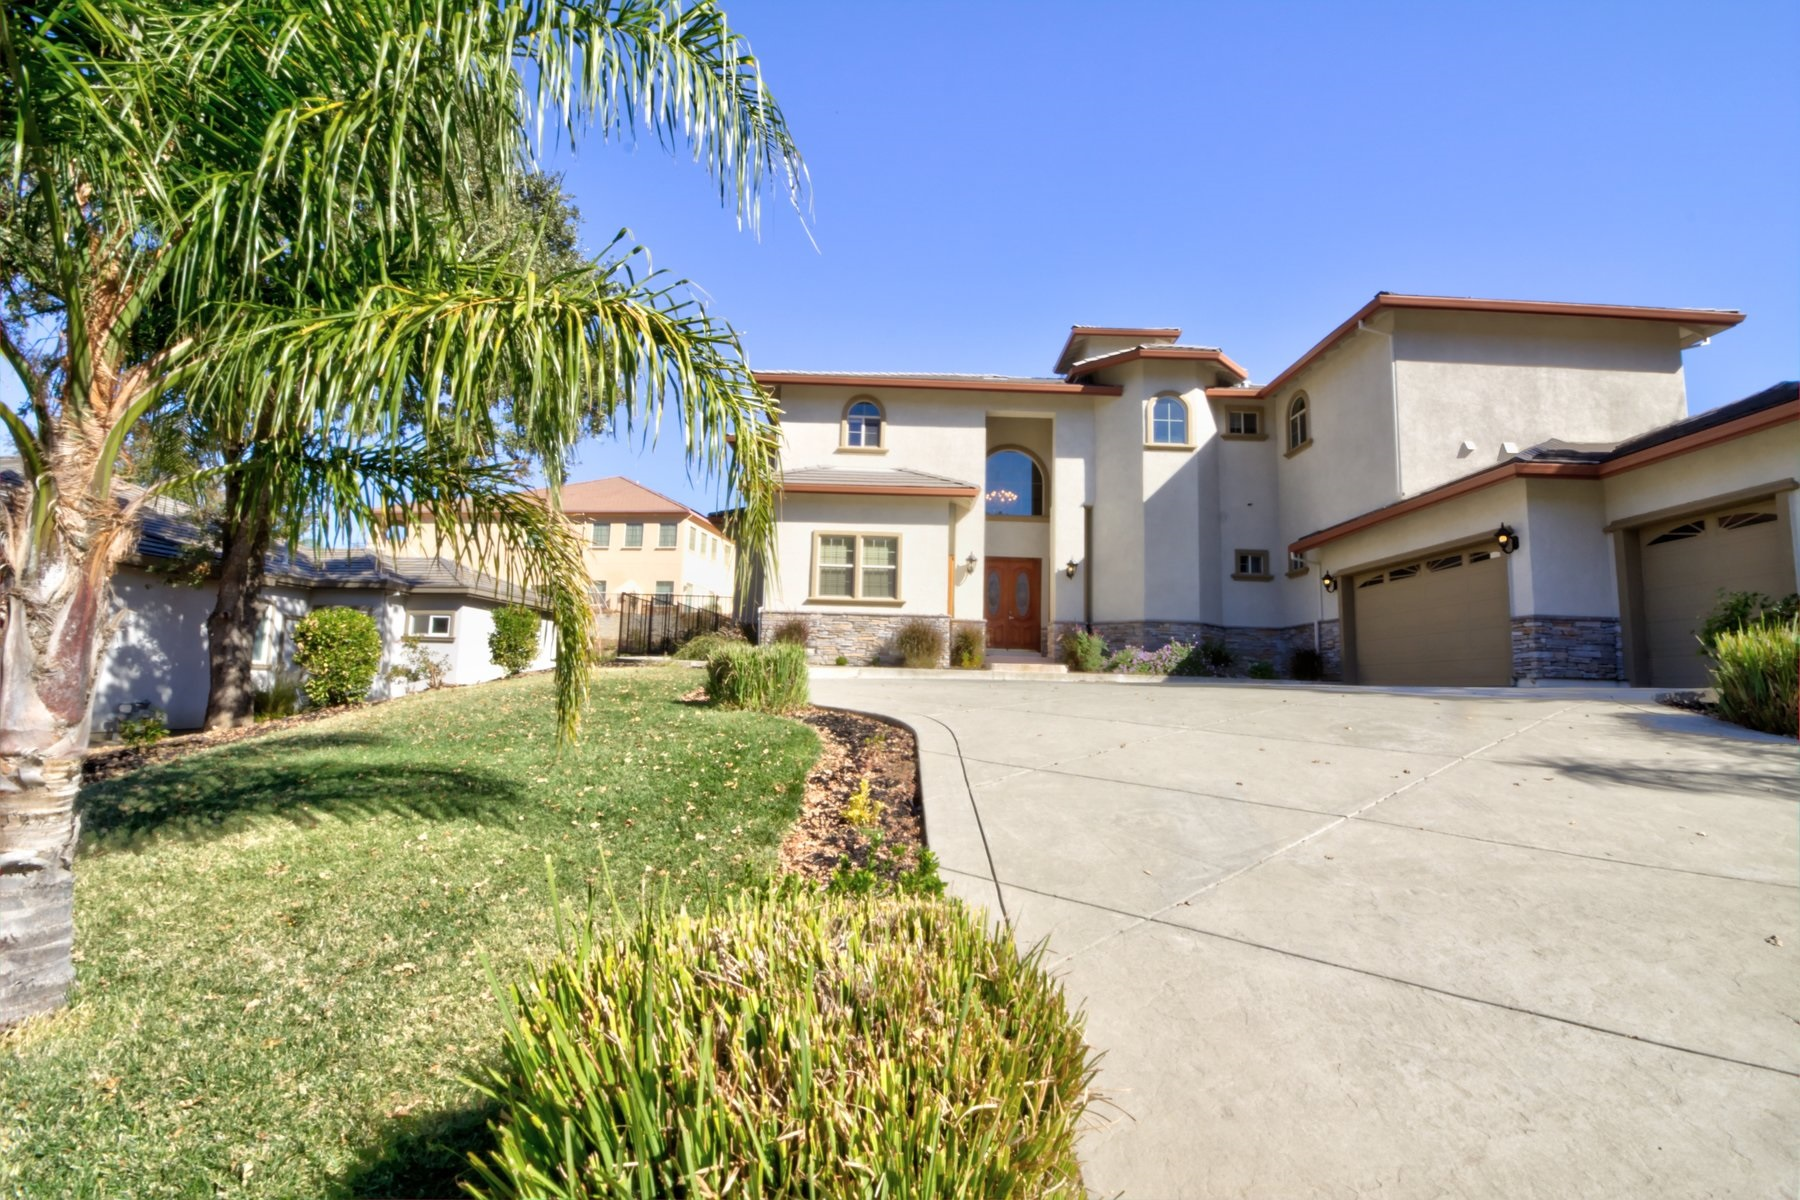 Single Family Home for Sale at 2025 Zinfandel Court, Vacaville, CA 95688 Vacaville, California, 95688 United States